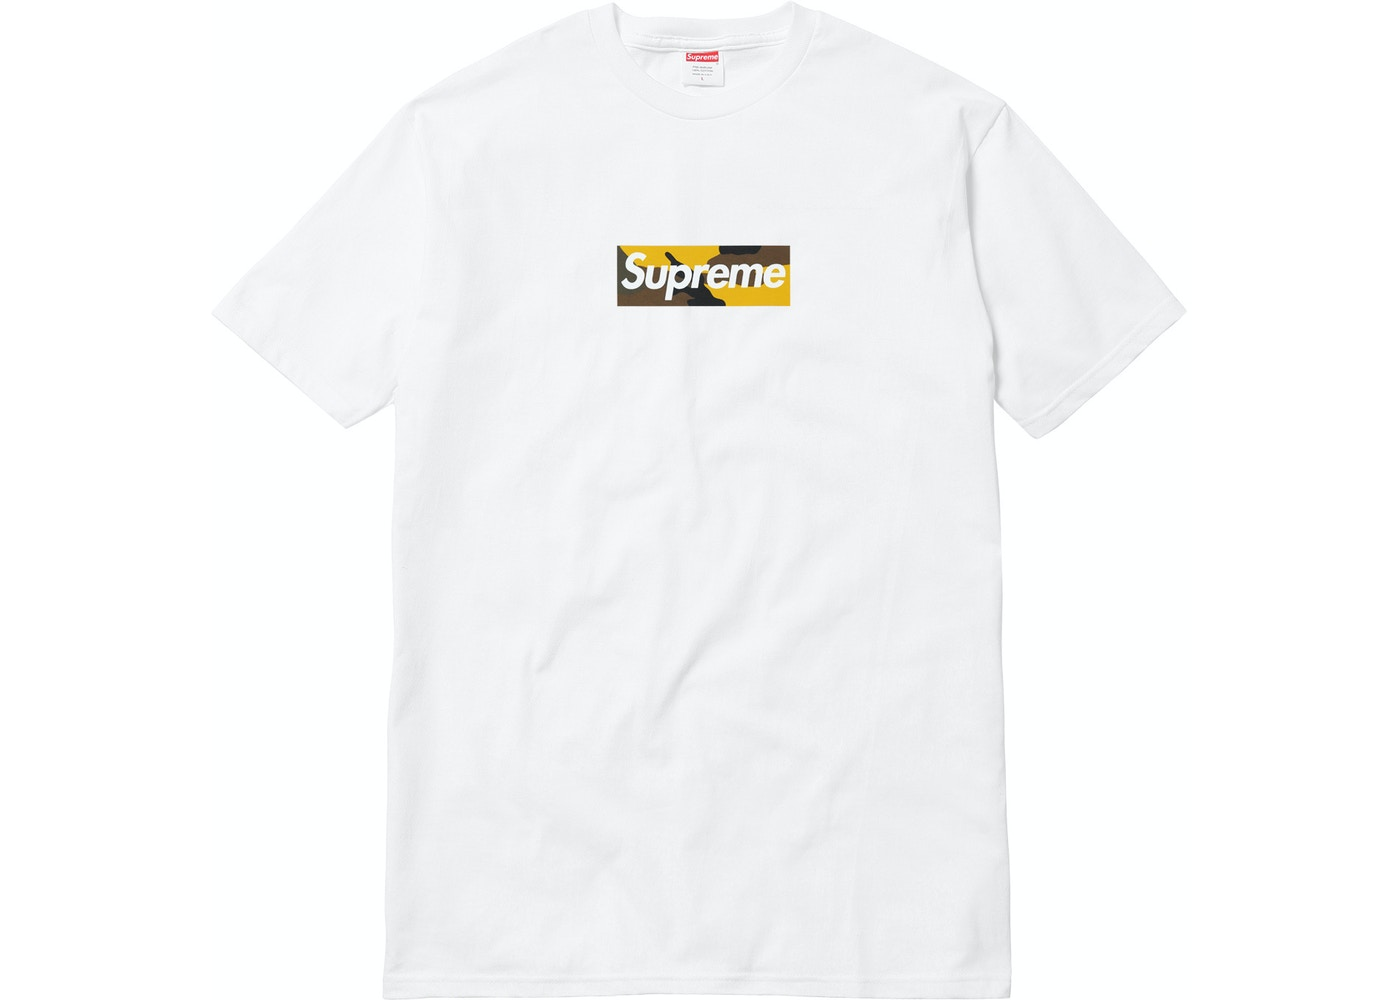 7b586b4de191 Supreme Brooklyn Box Logo Tee White - FW17